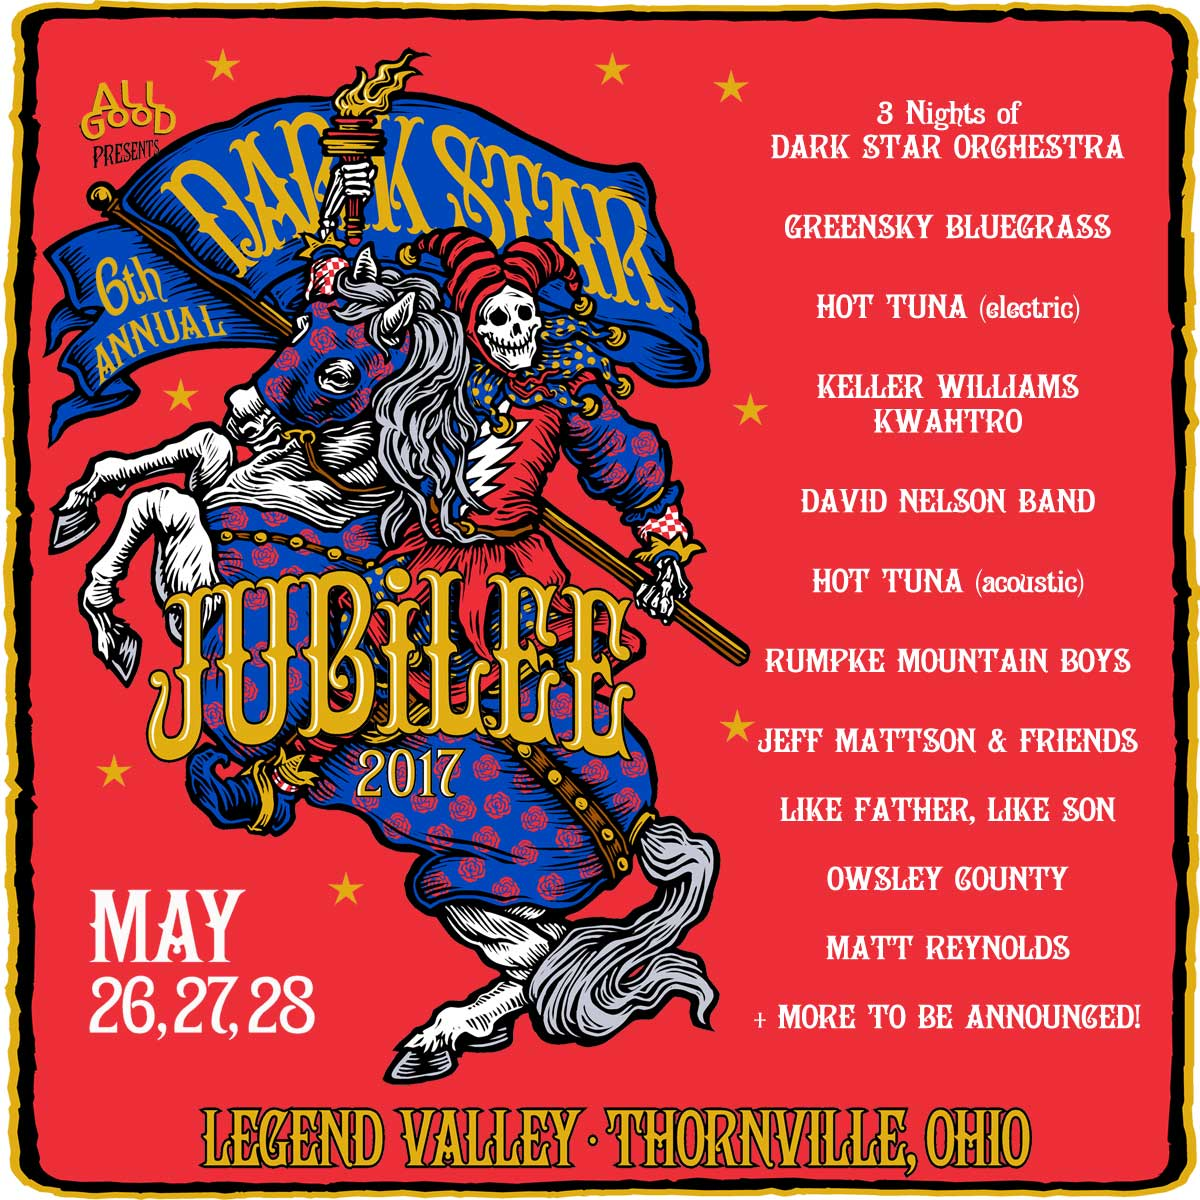 Dark Star Jubilee Set to Return to Legend Valley May 26-28